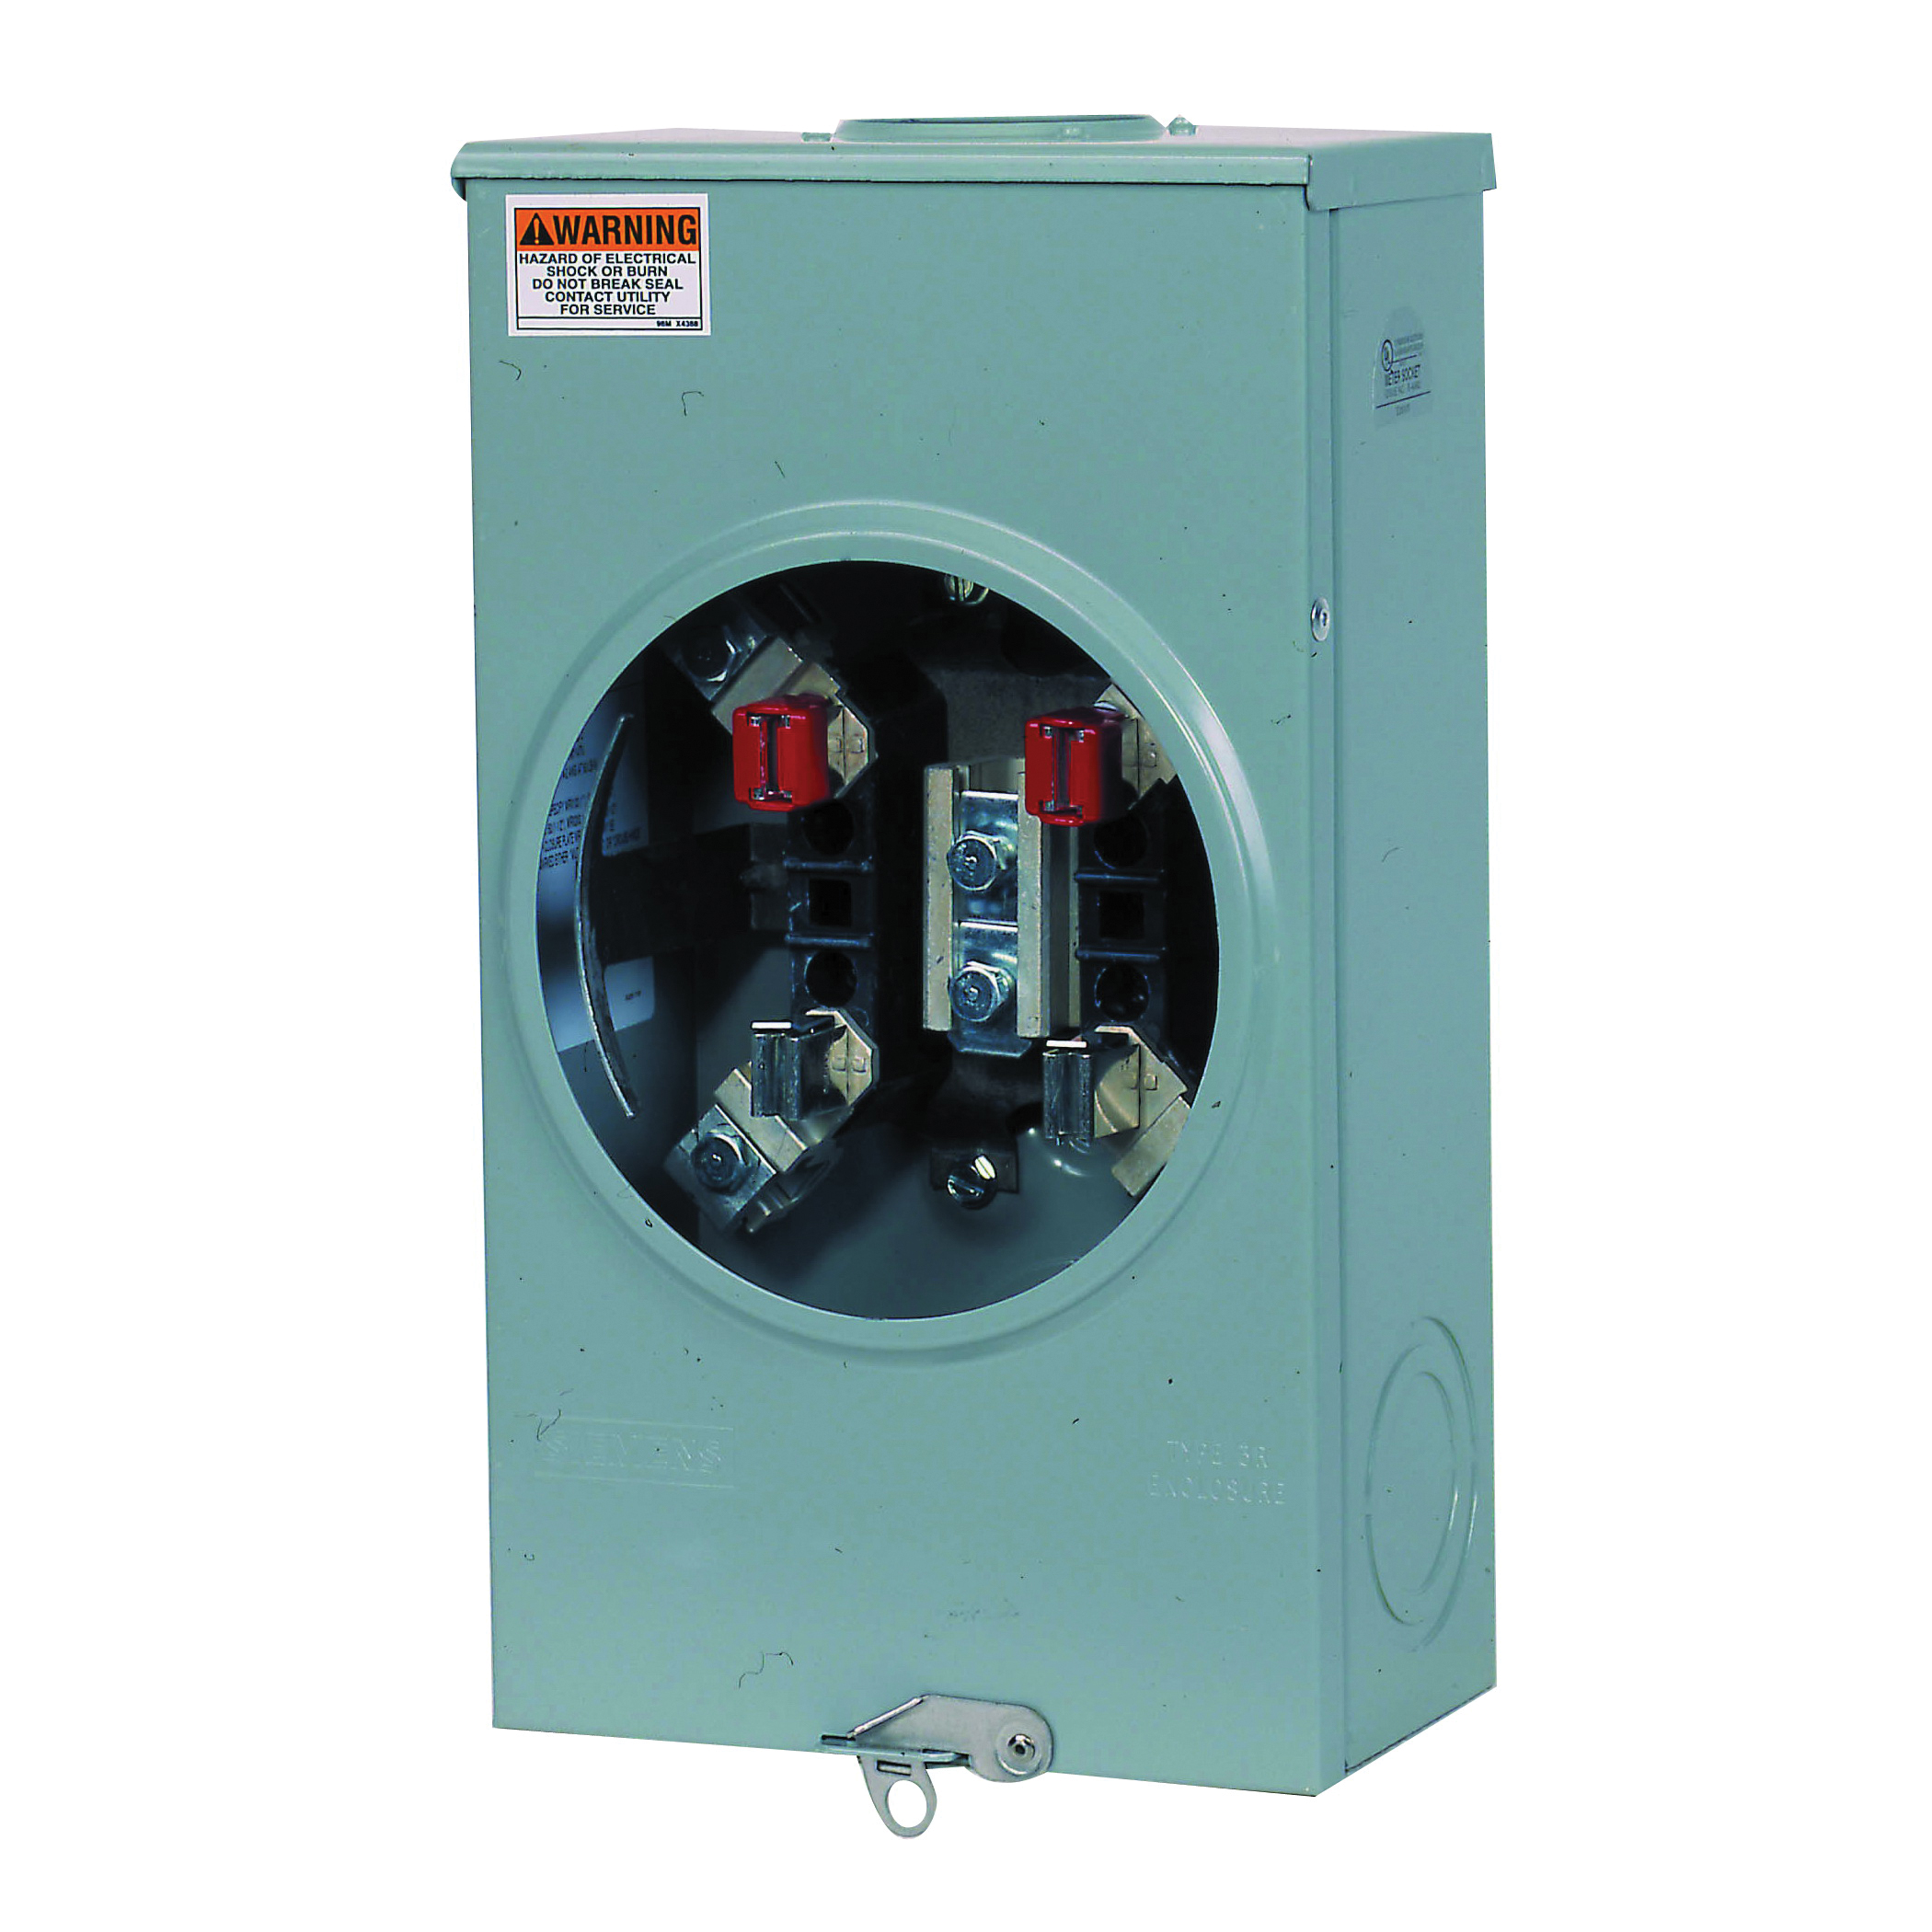 Picture of Siemens SUAT317-0G Meter Socket, 1-Phase, 200 A, 600 V, 4-Jaw, Overhead Feed Cable Entry, NEMA 3R Enclosure